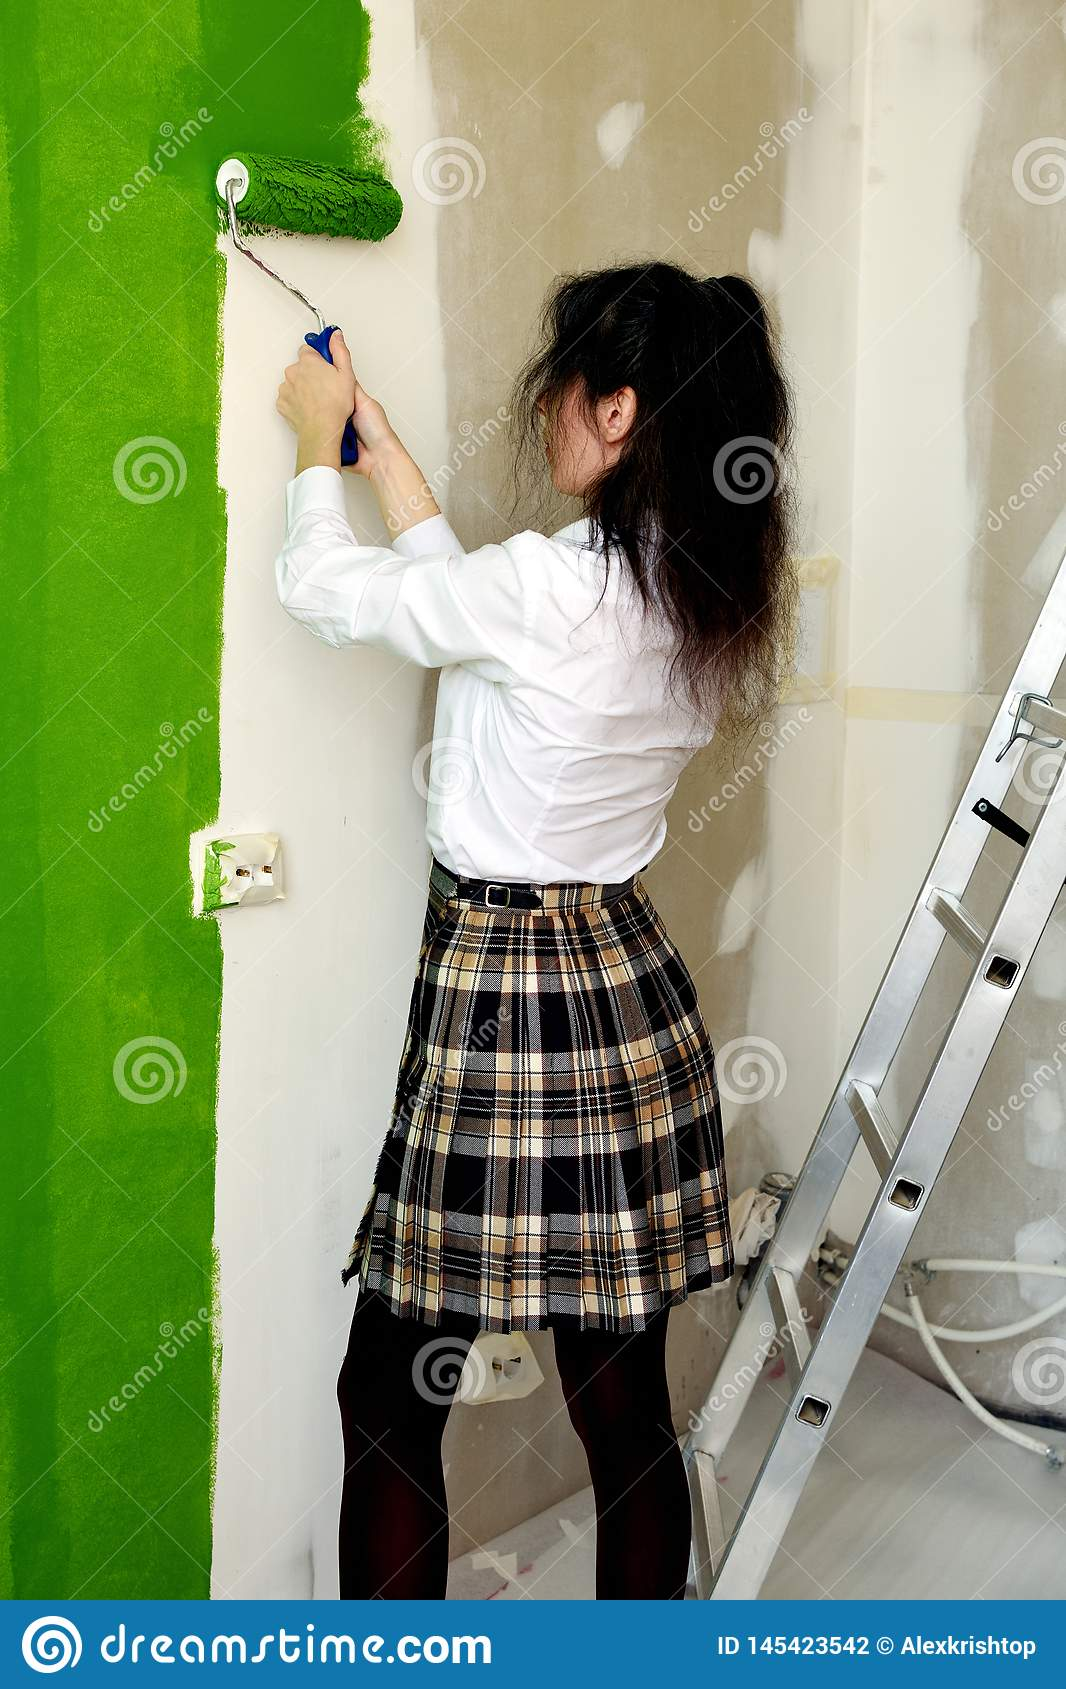 School girl is learning how to paint a wall in green with a roller